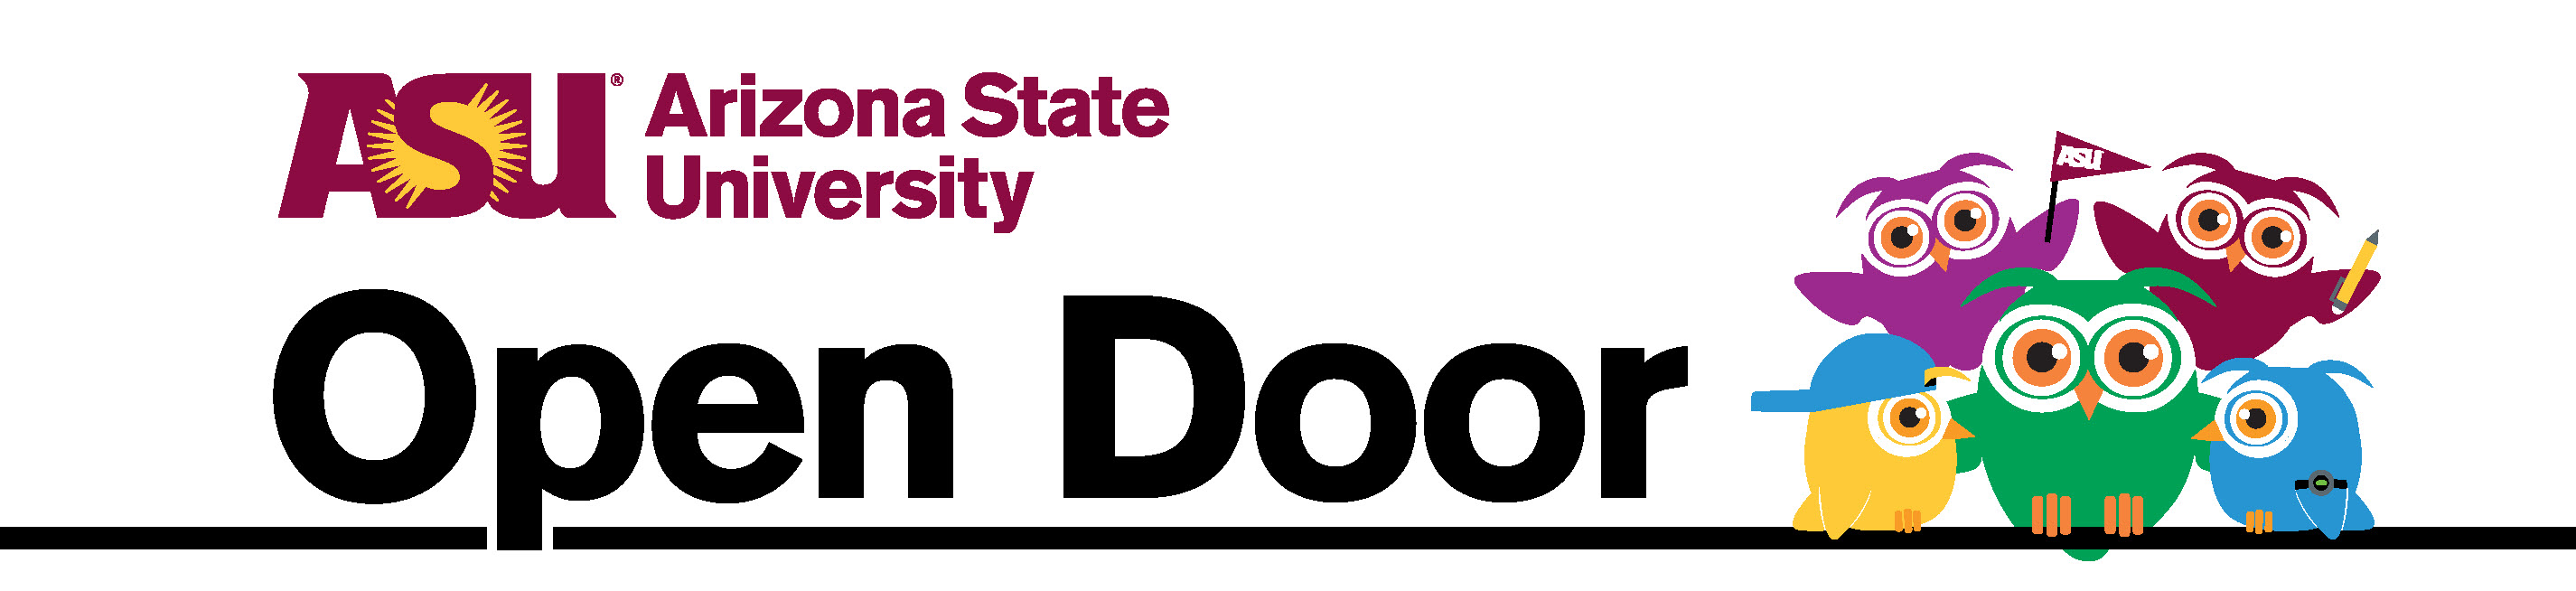 ASU Open Door image